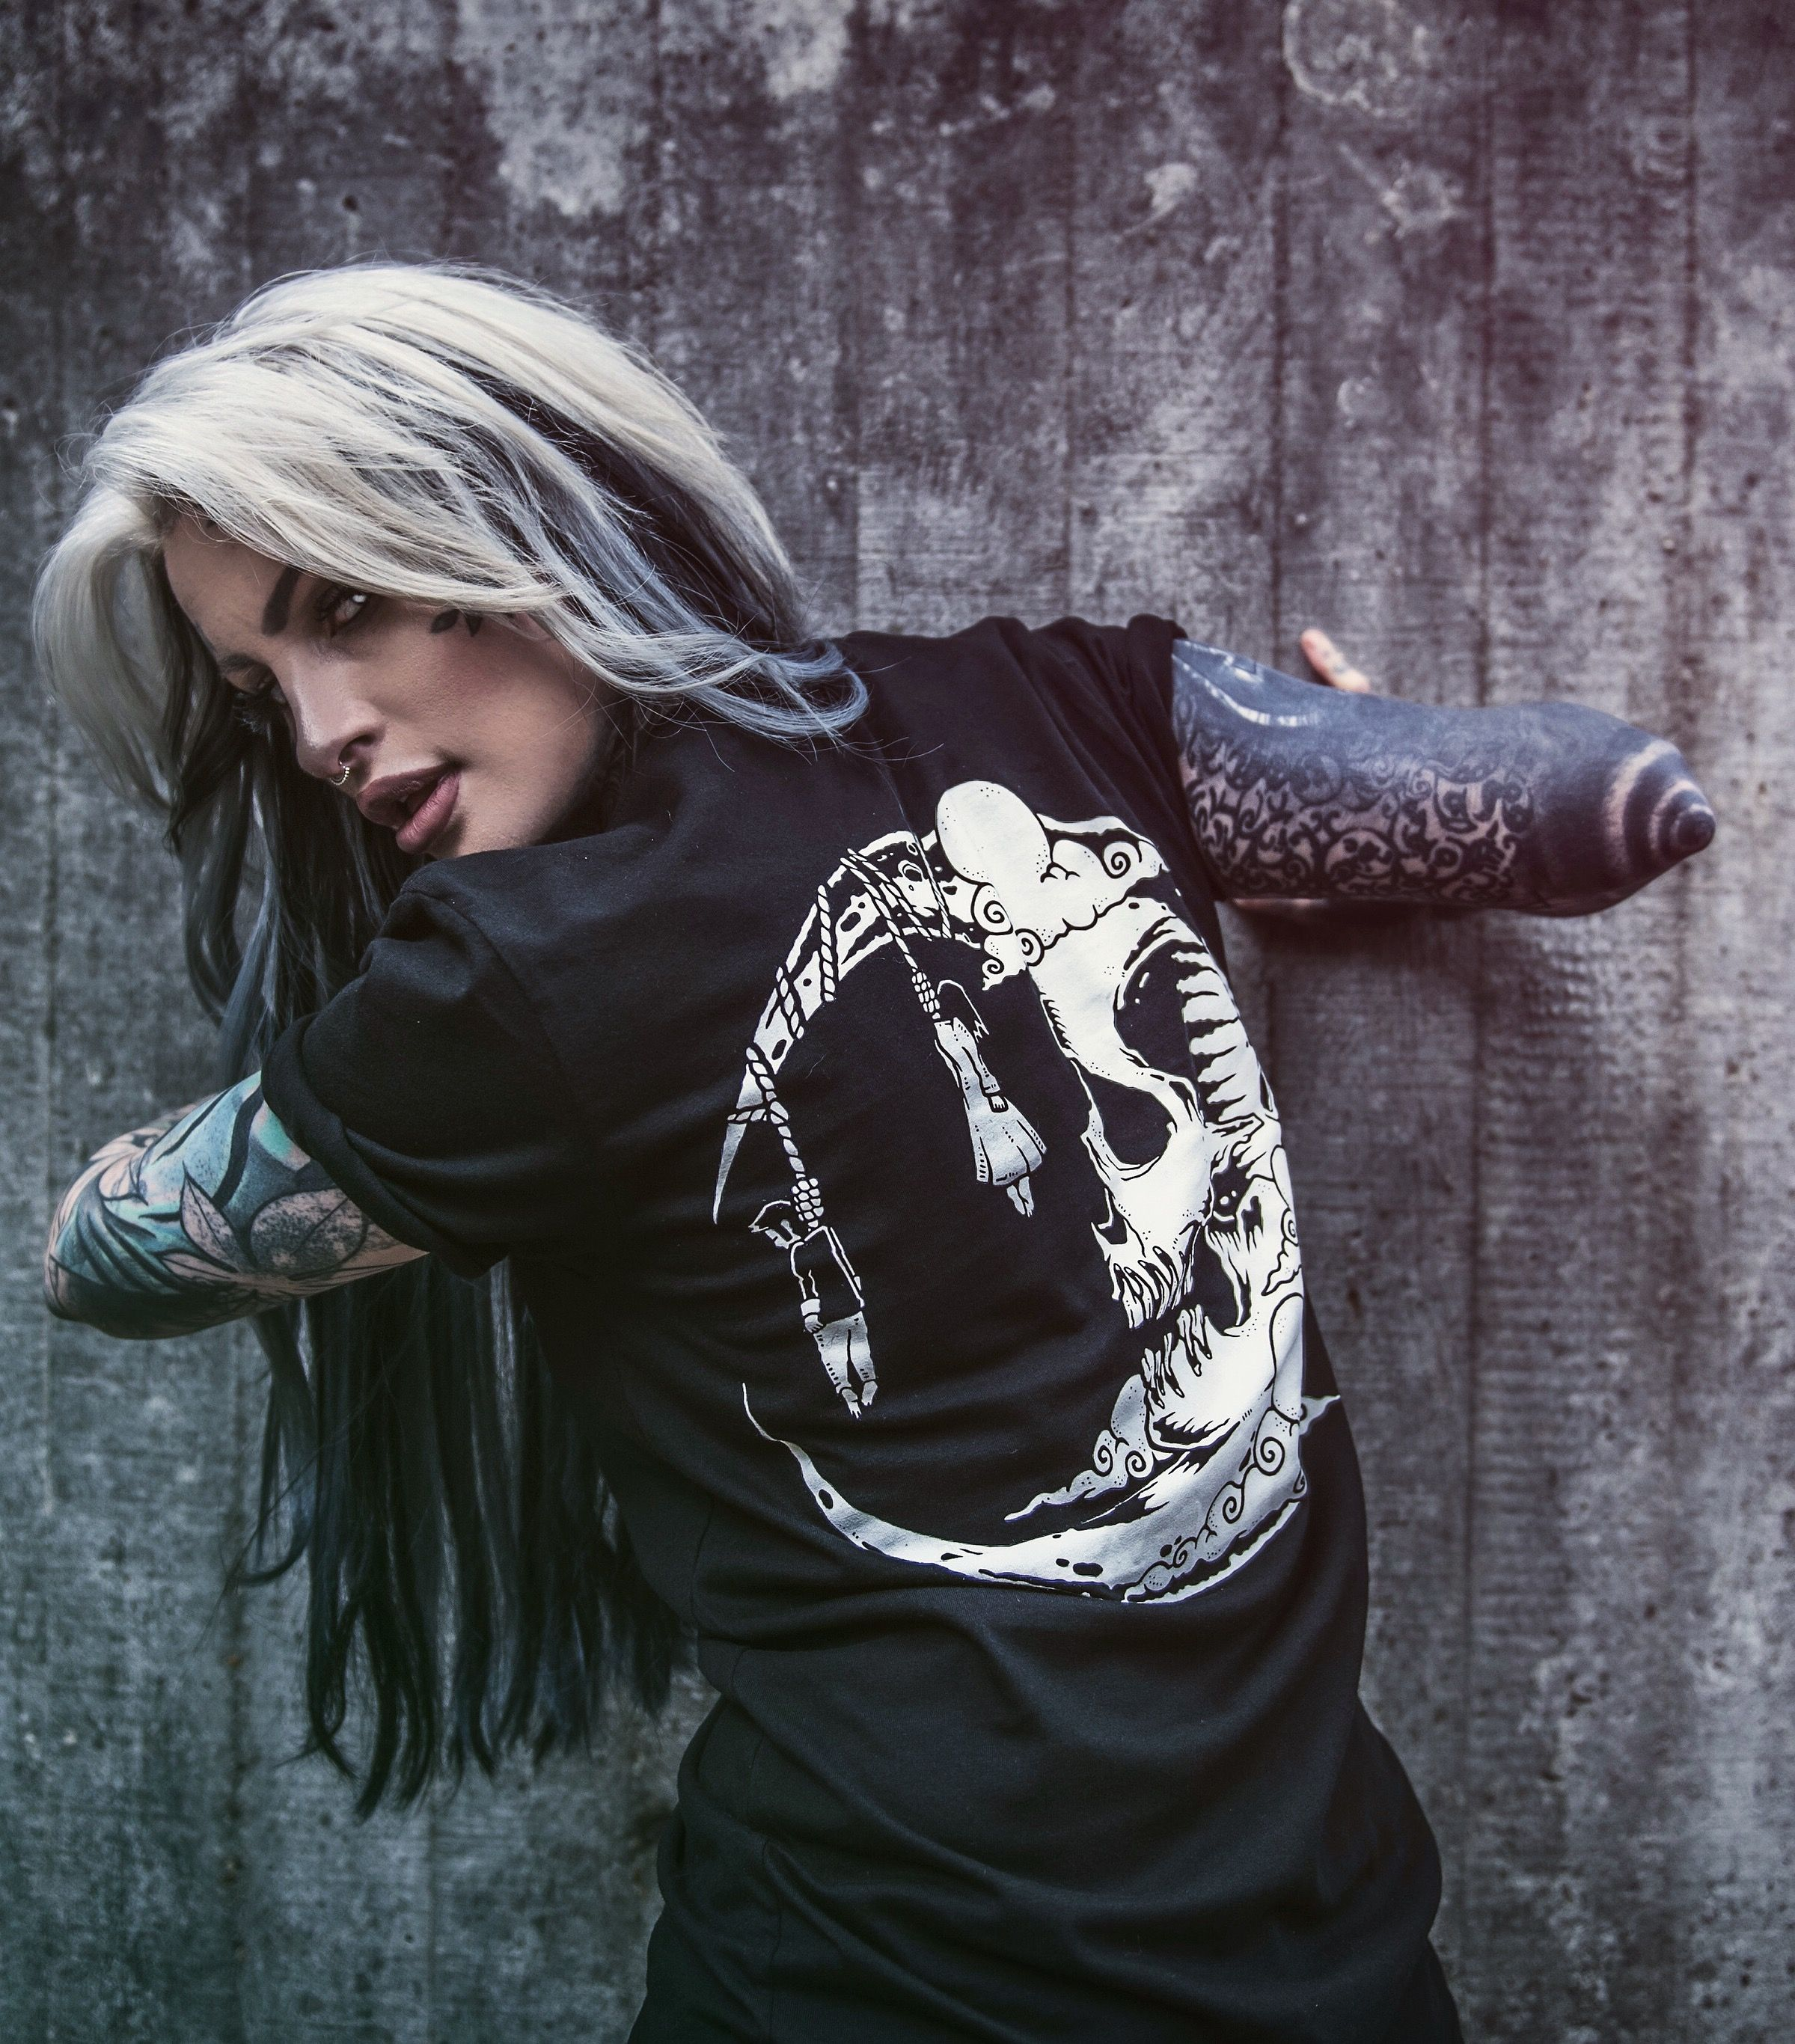 Pin by Ink it out on Ink it out Clothing Insta fashion